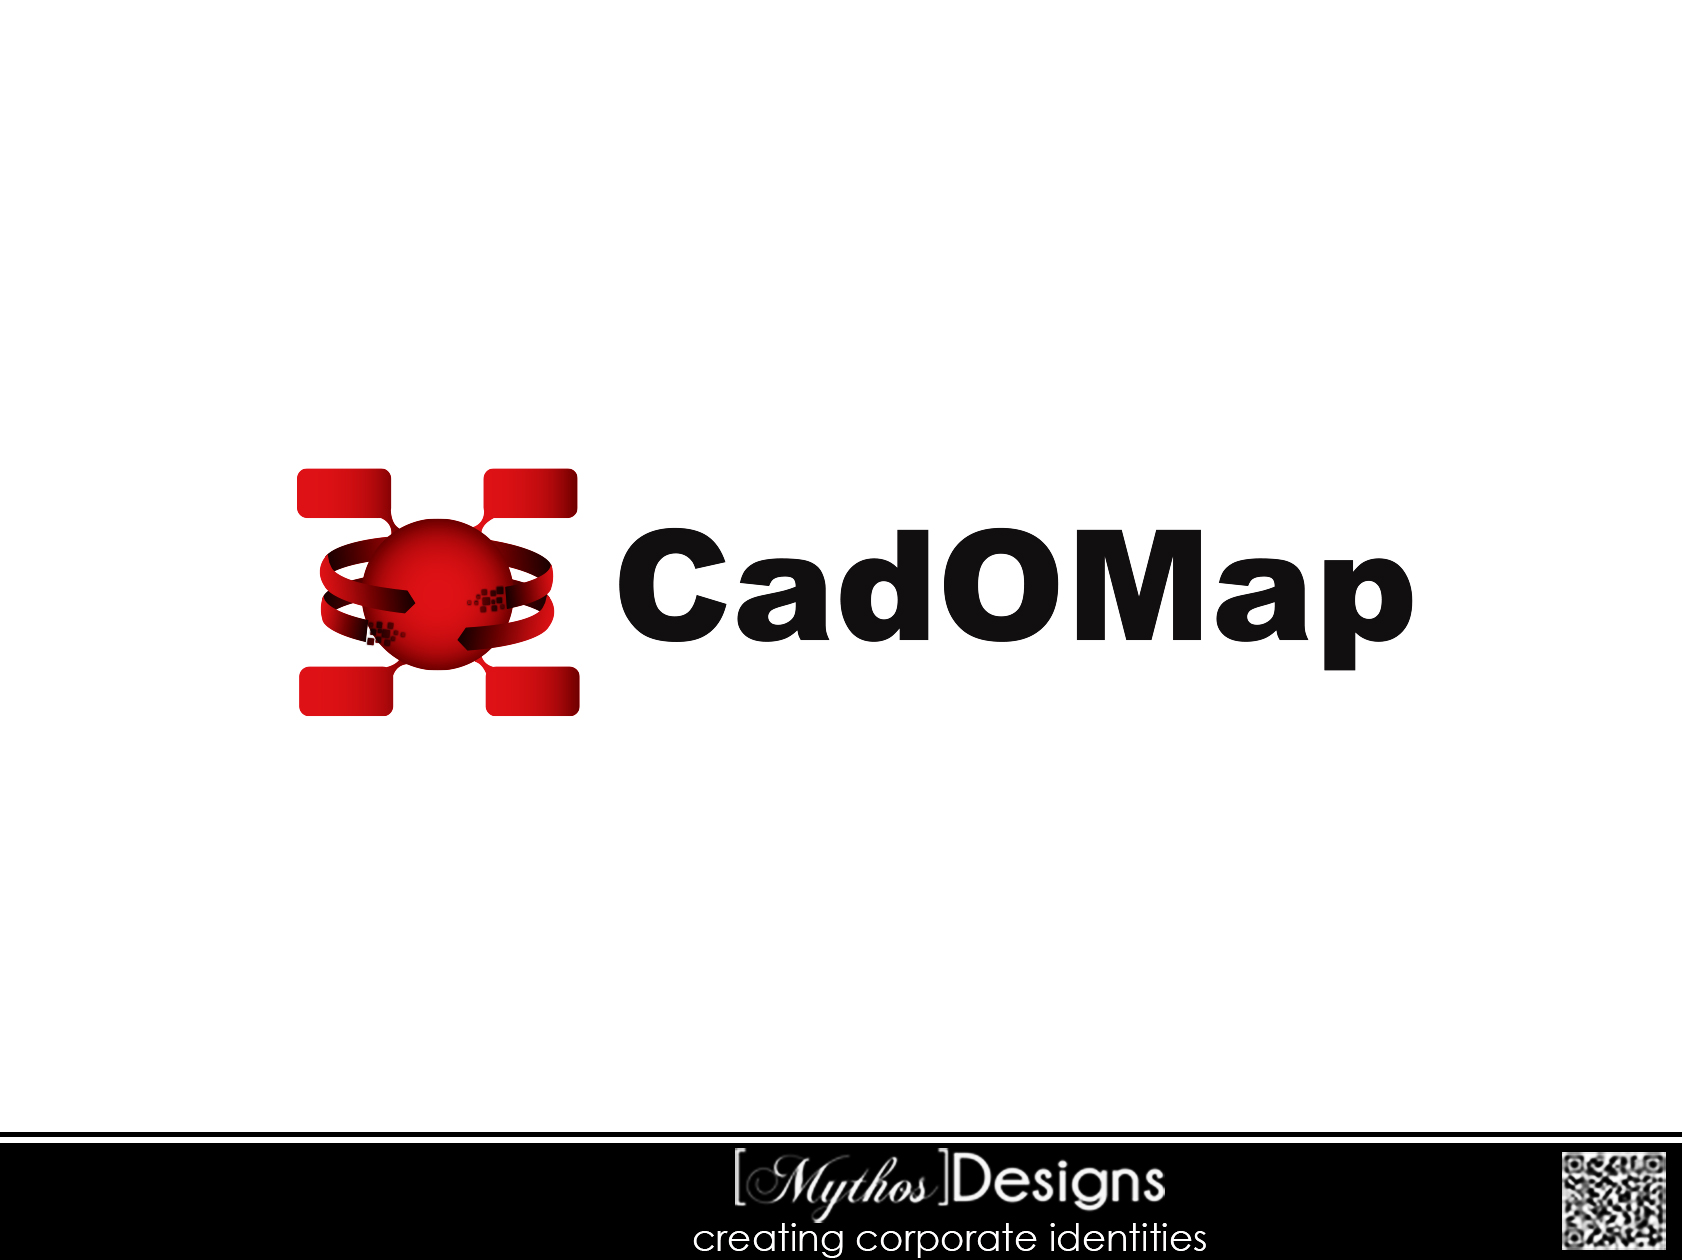 Logo Design by Mythos Designs - Entry No. 34 in the Logo Design Contest Captivating Logo Design for CadOMap software product.